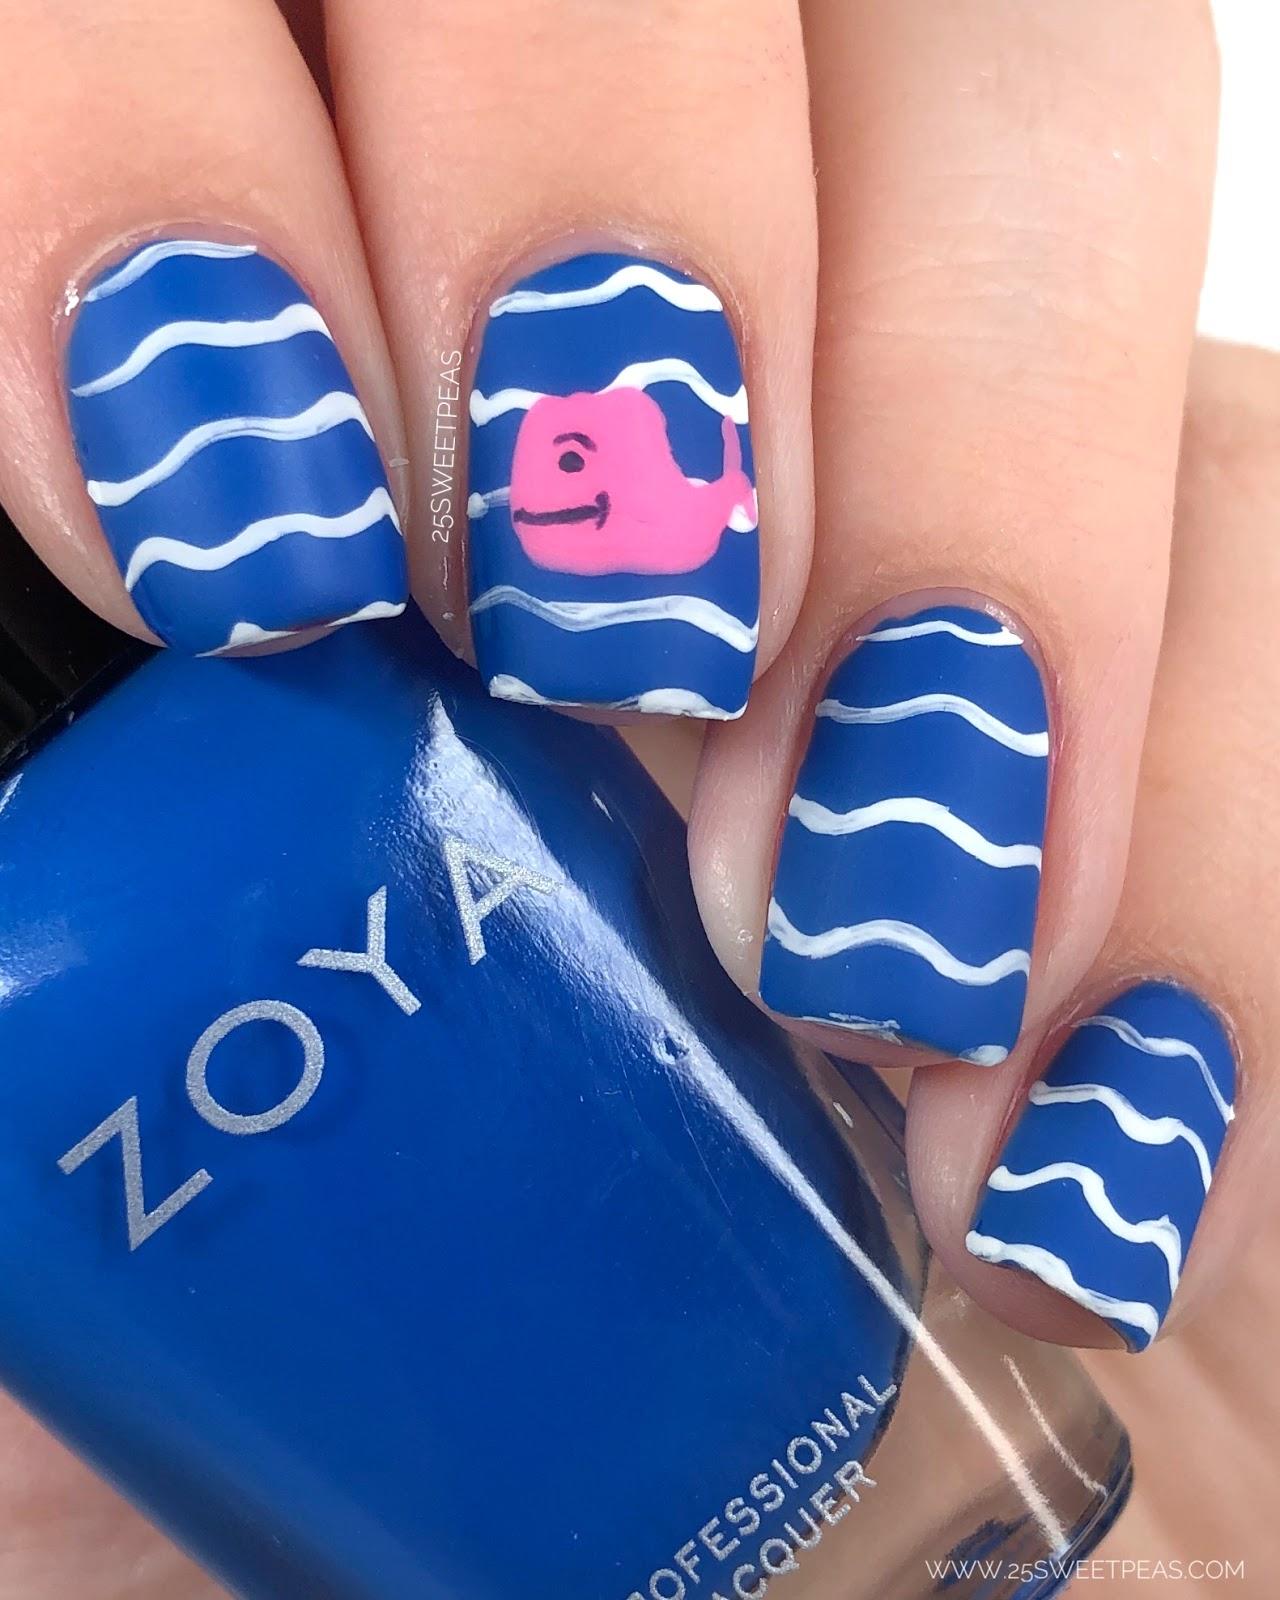 Vineyard Vines Inspired Nail Art